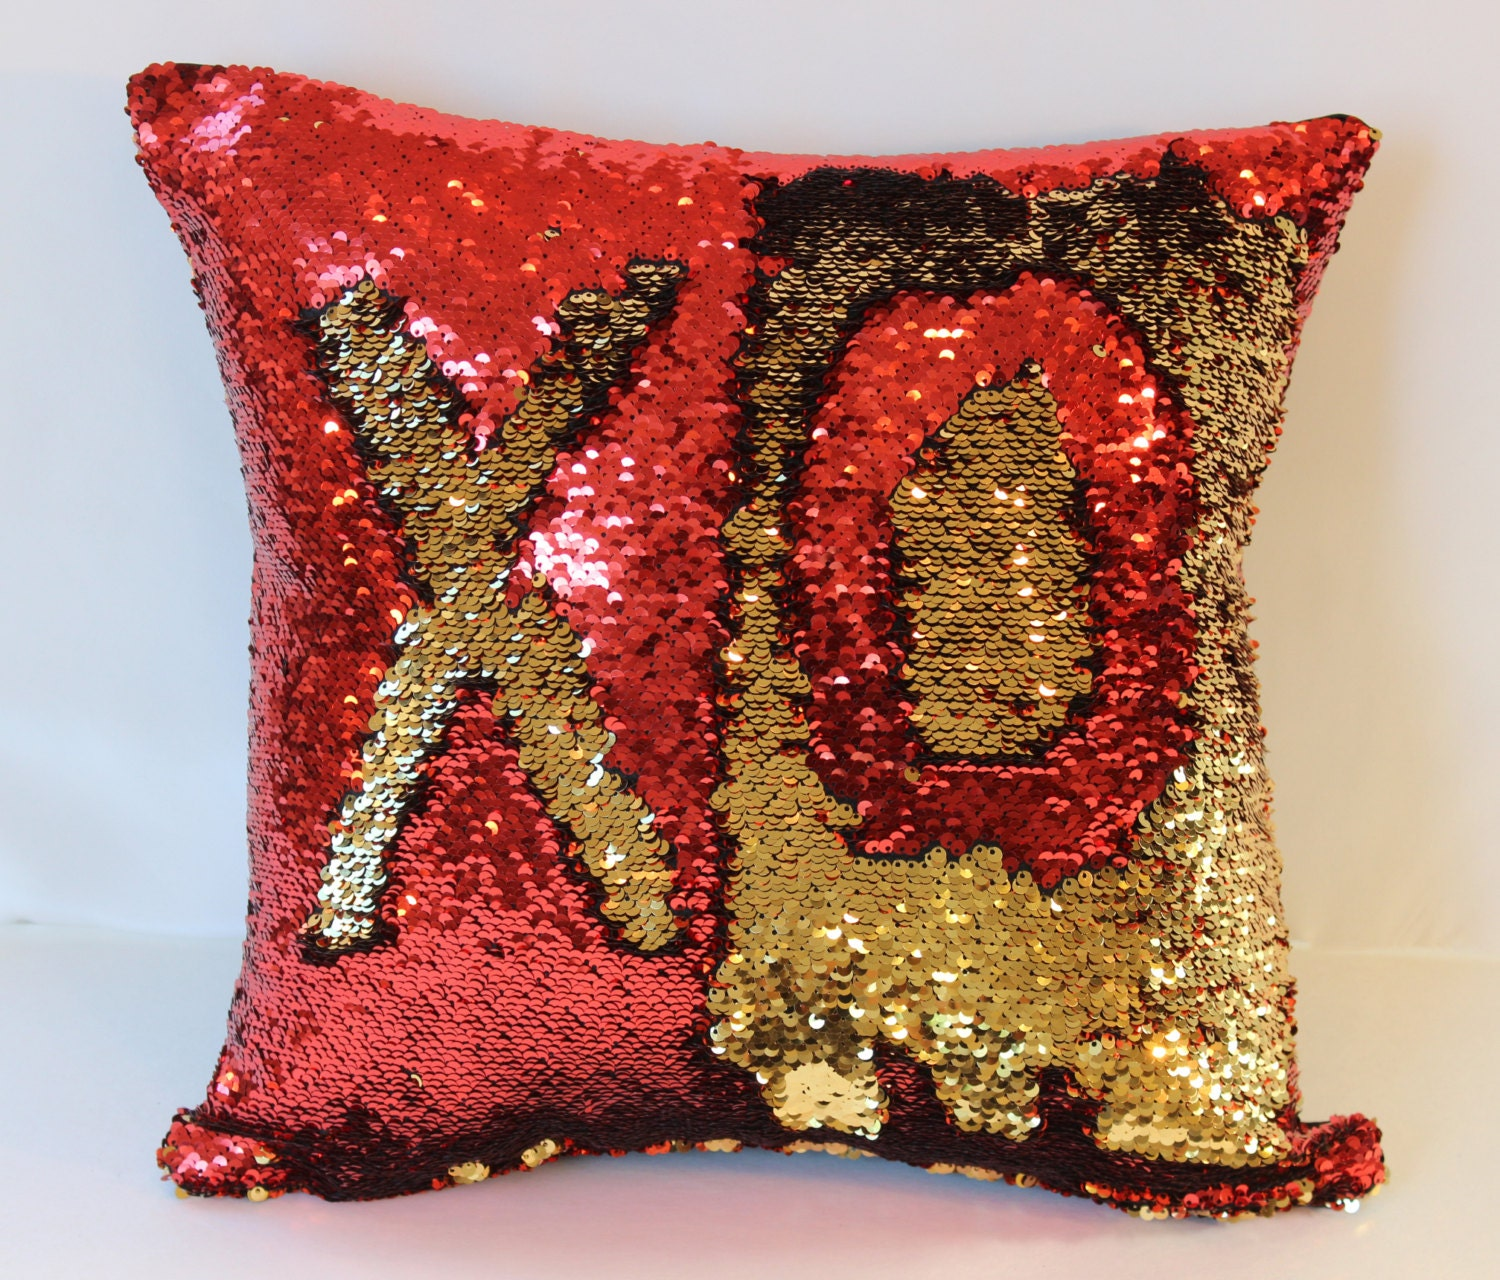 Red/Gold Mermaid Pillows Sequin Pillow Cover Interactive